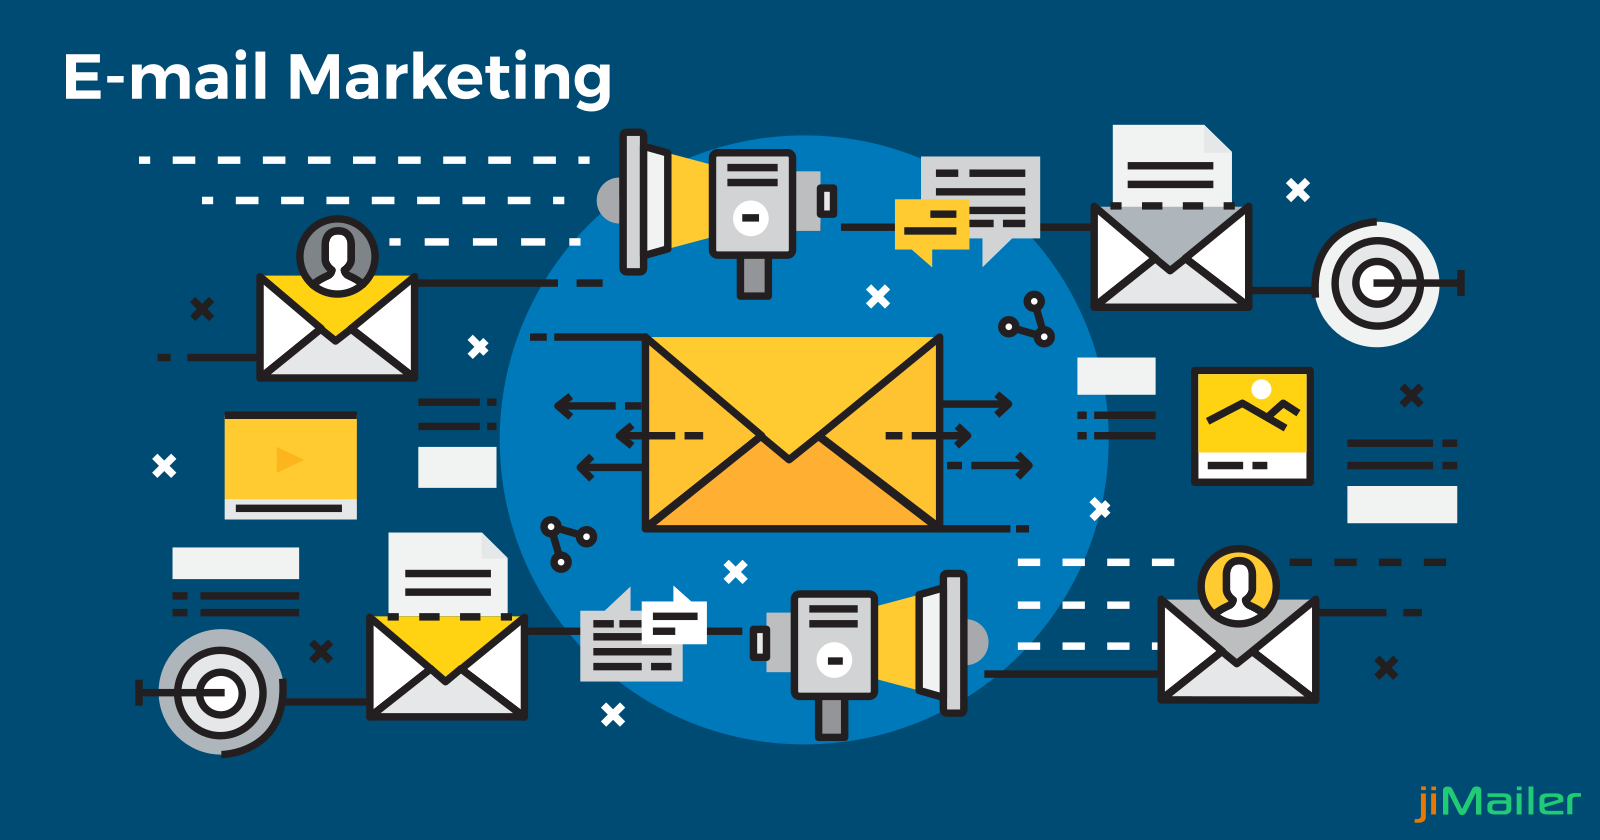 Choosing an Appropriate Email Marketing Platform For Your Business